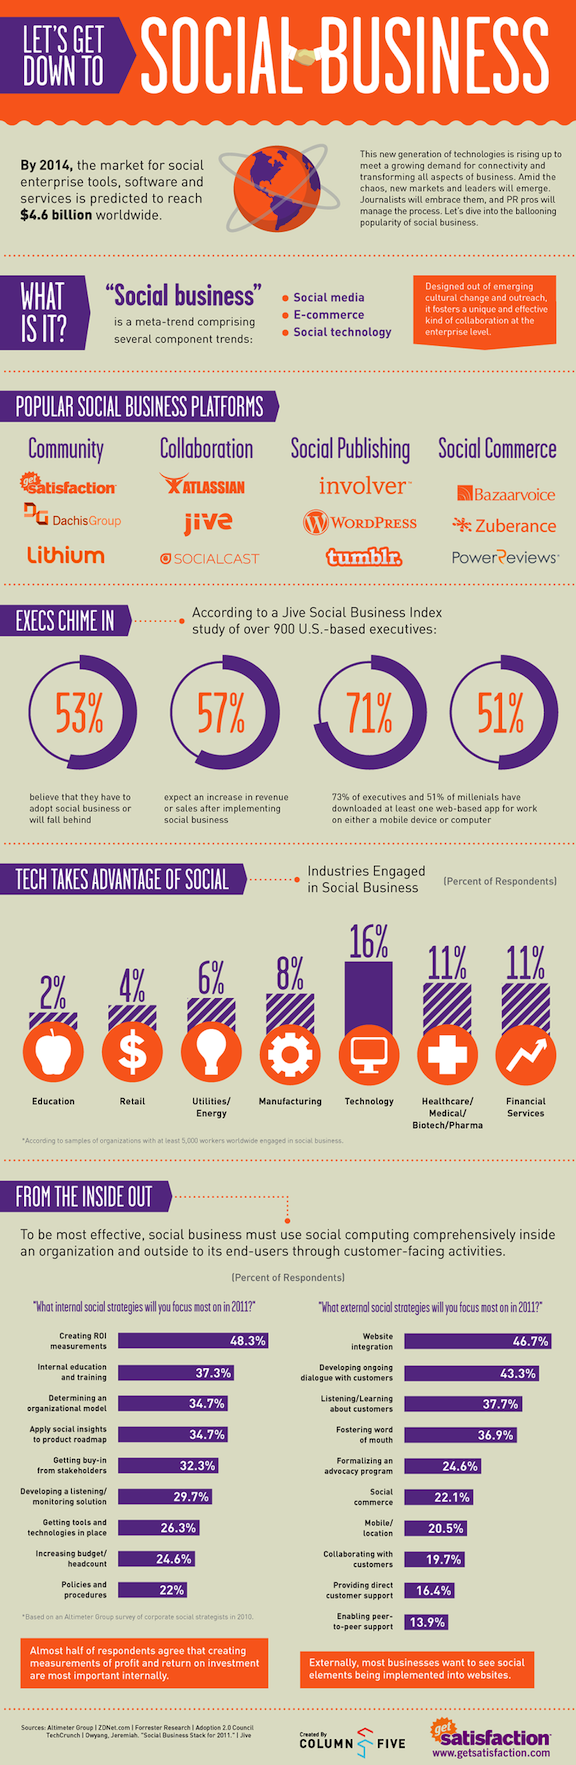 social-business-infographic-large-b.png